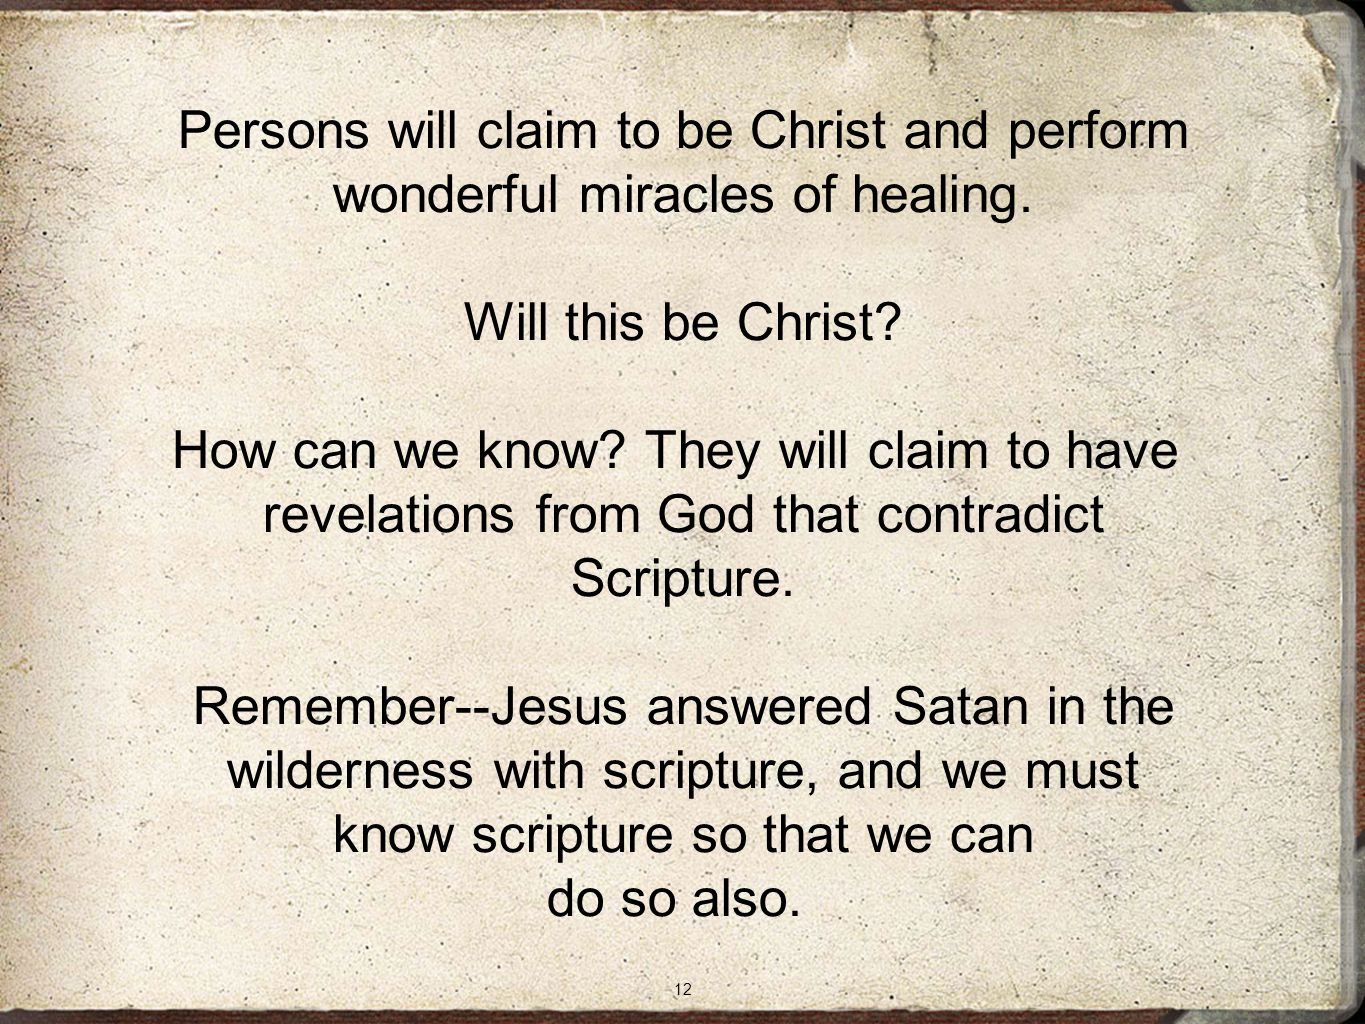 12 Persons will claim to be Christ and perform wonderful miracles of healing.